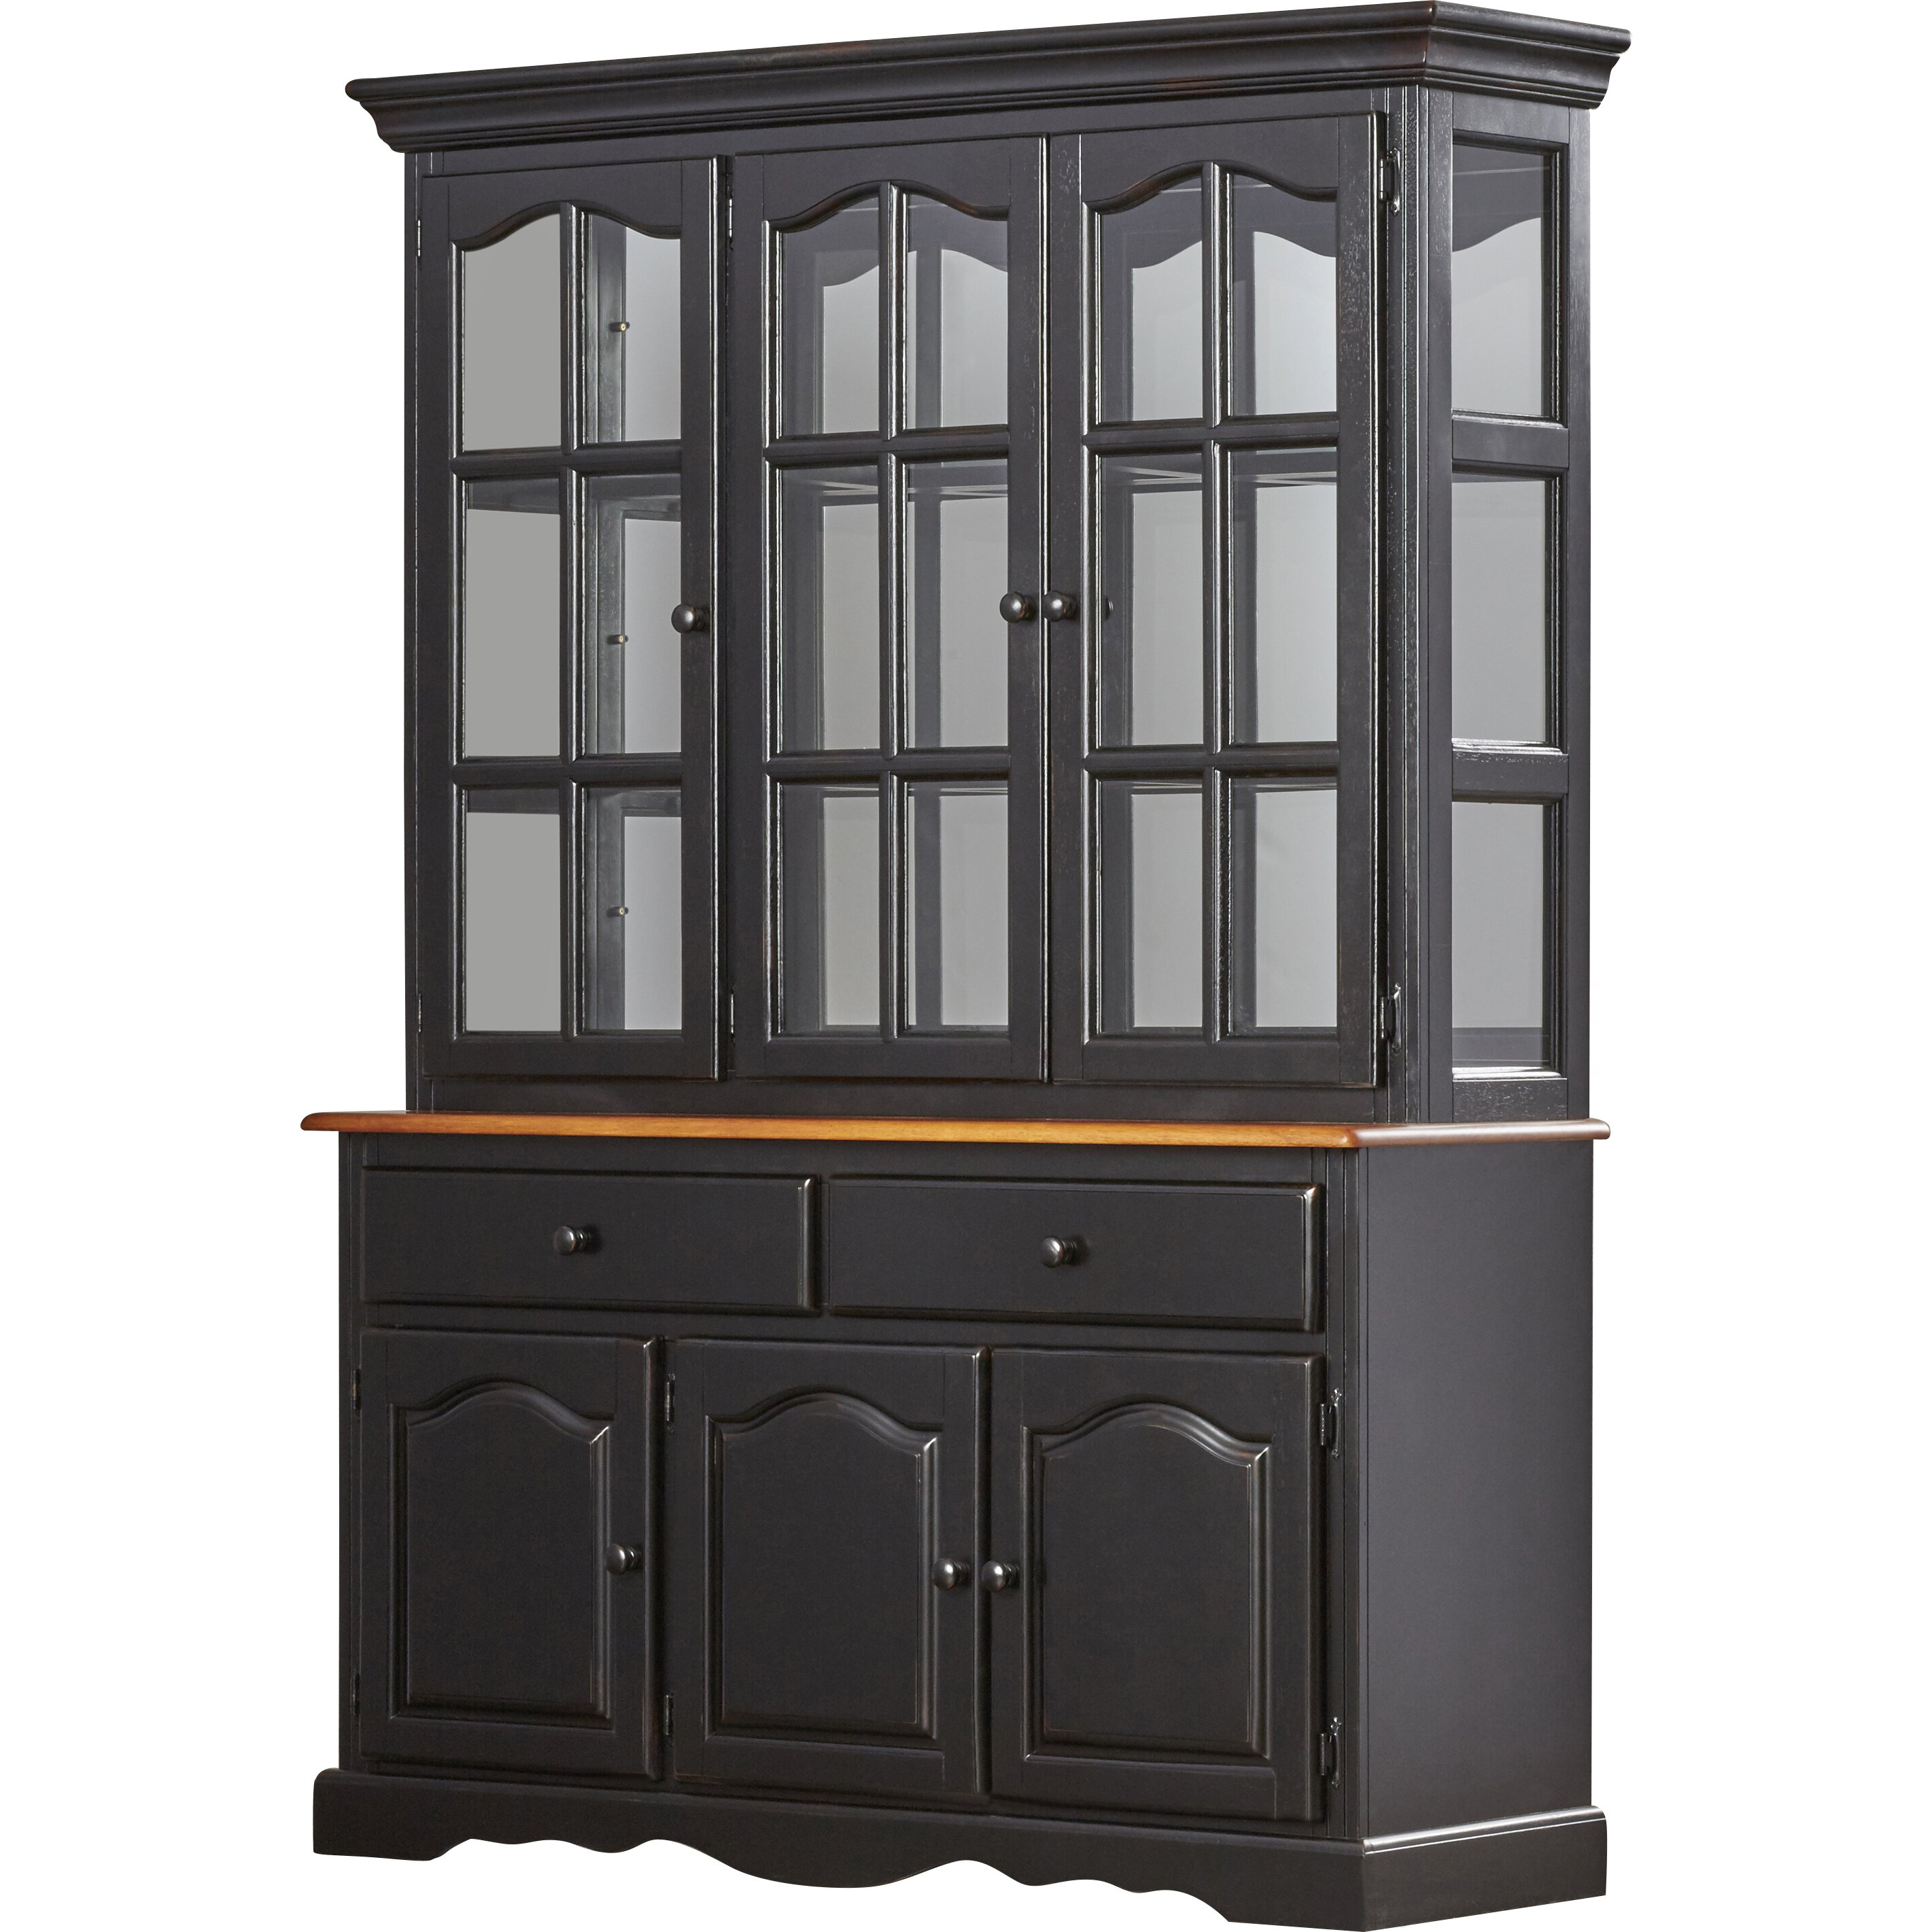 Sunset trading sunset selections dining china cabinet for Dining cabinet furniture